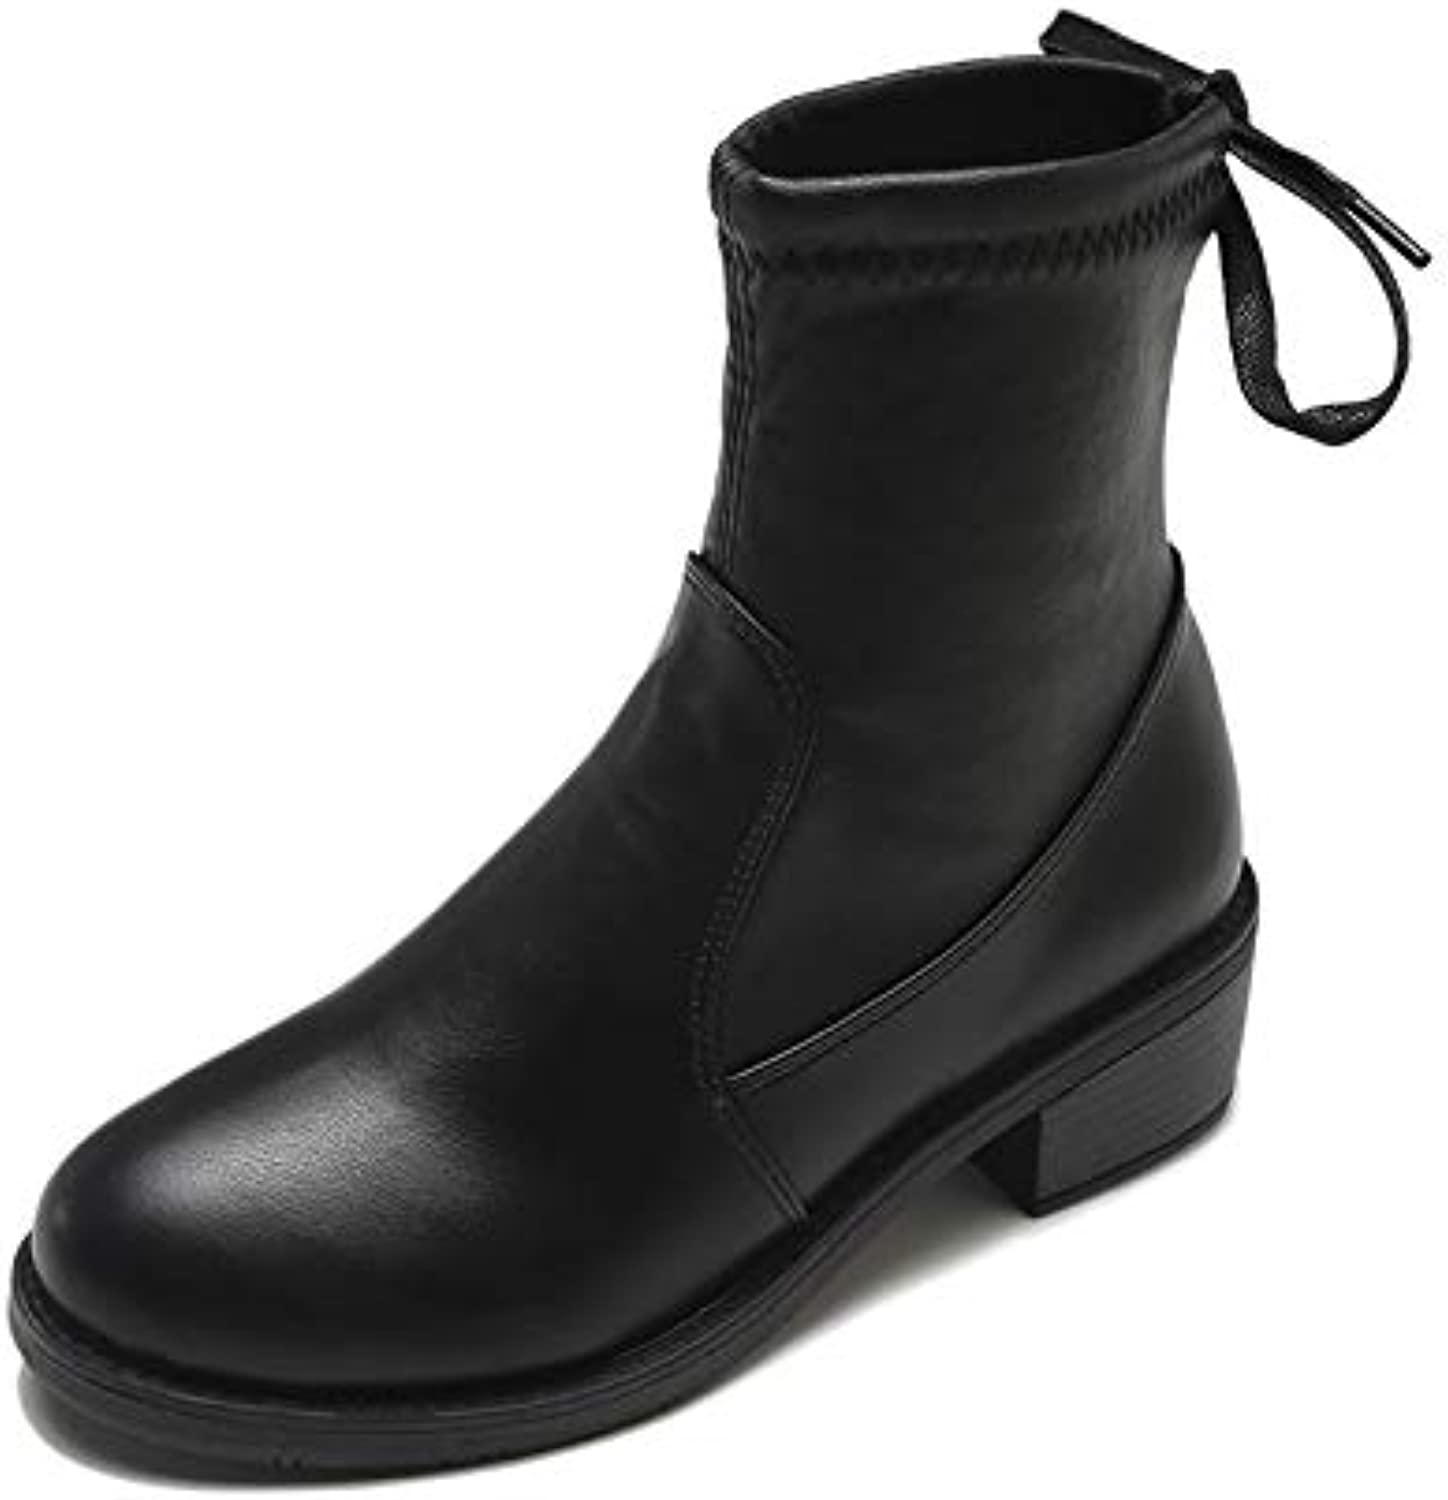 Casual Ladies Boots Soft face with Low Heel shoes Black 38EU